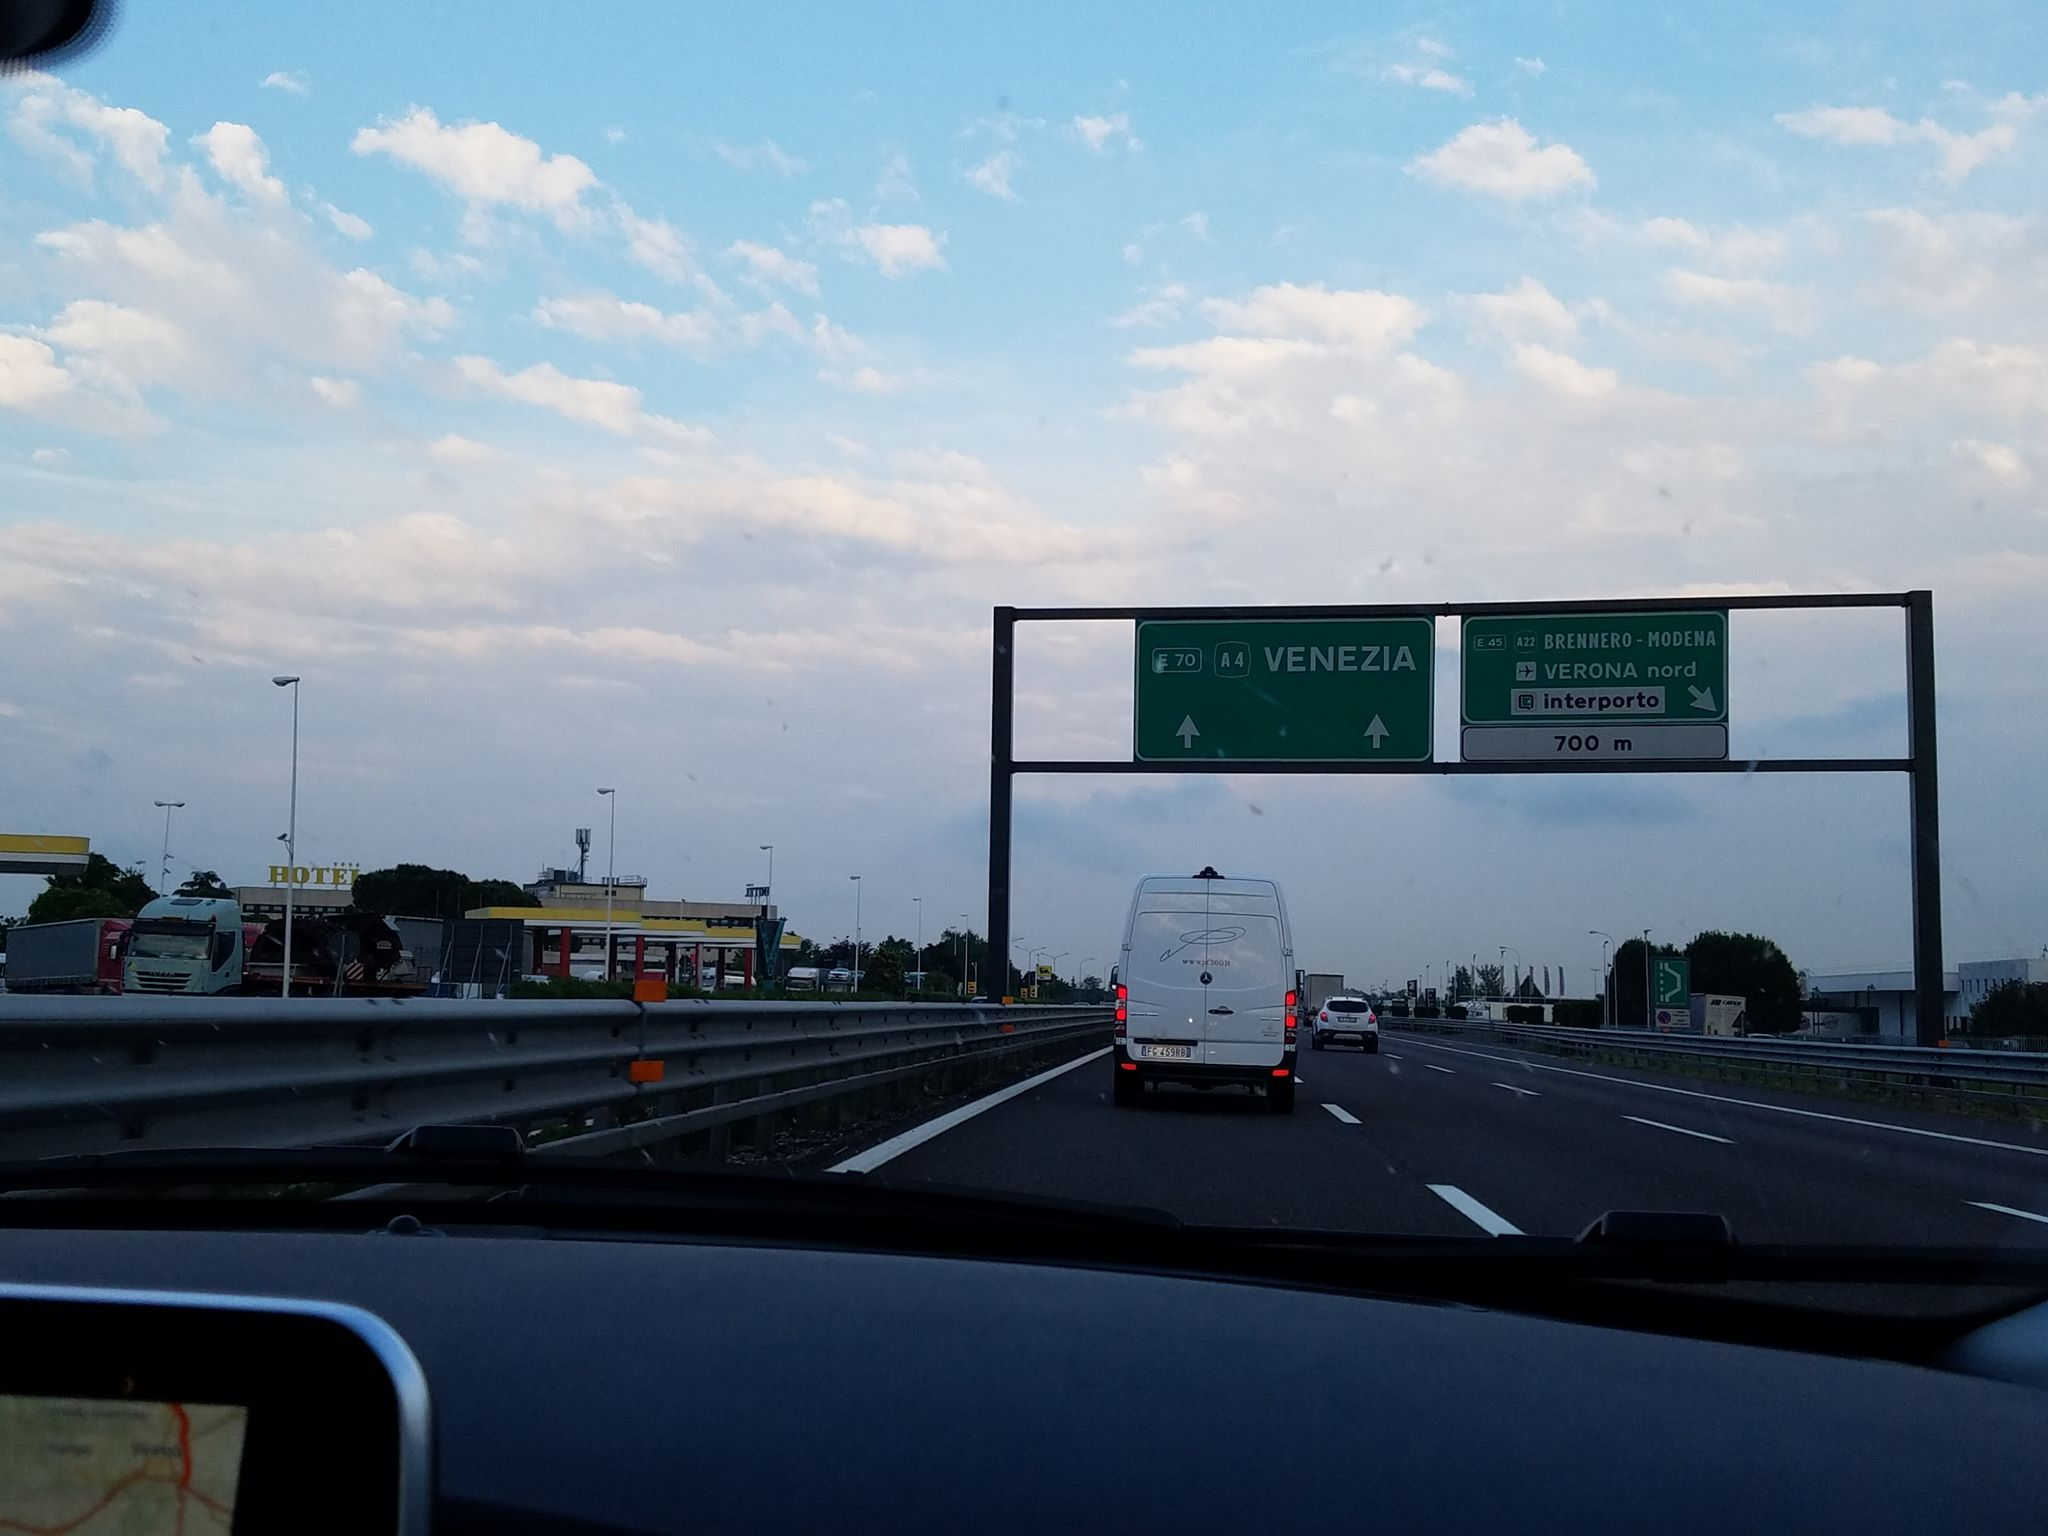 Philadelphia drivers should feel at home on Italian highways, like on this one heading toward Venice. Note how the left lane is moving slowest of the three.